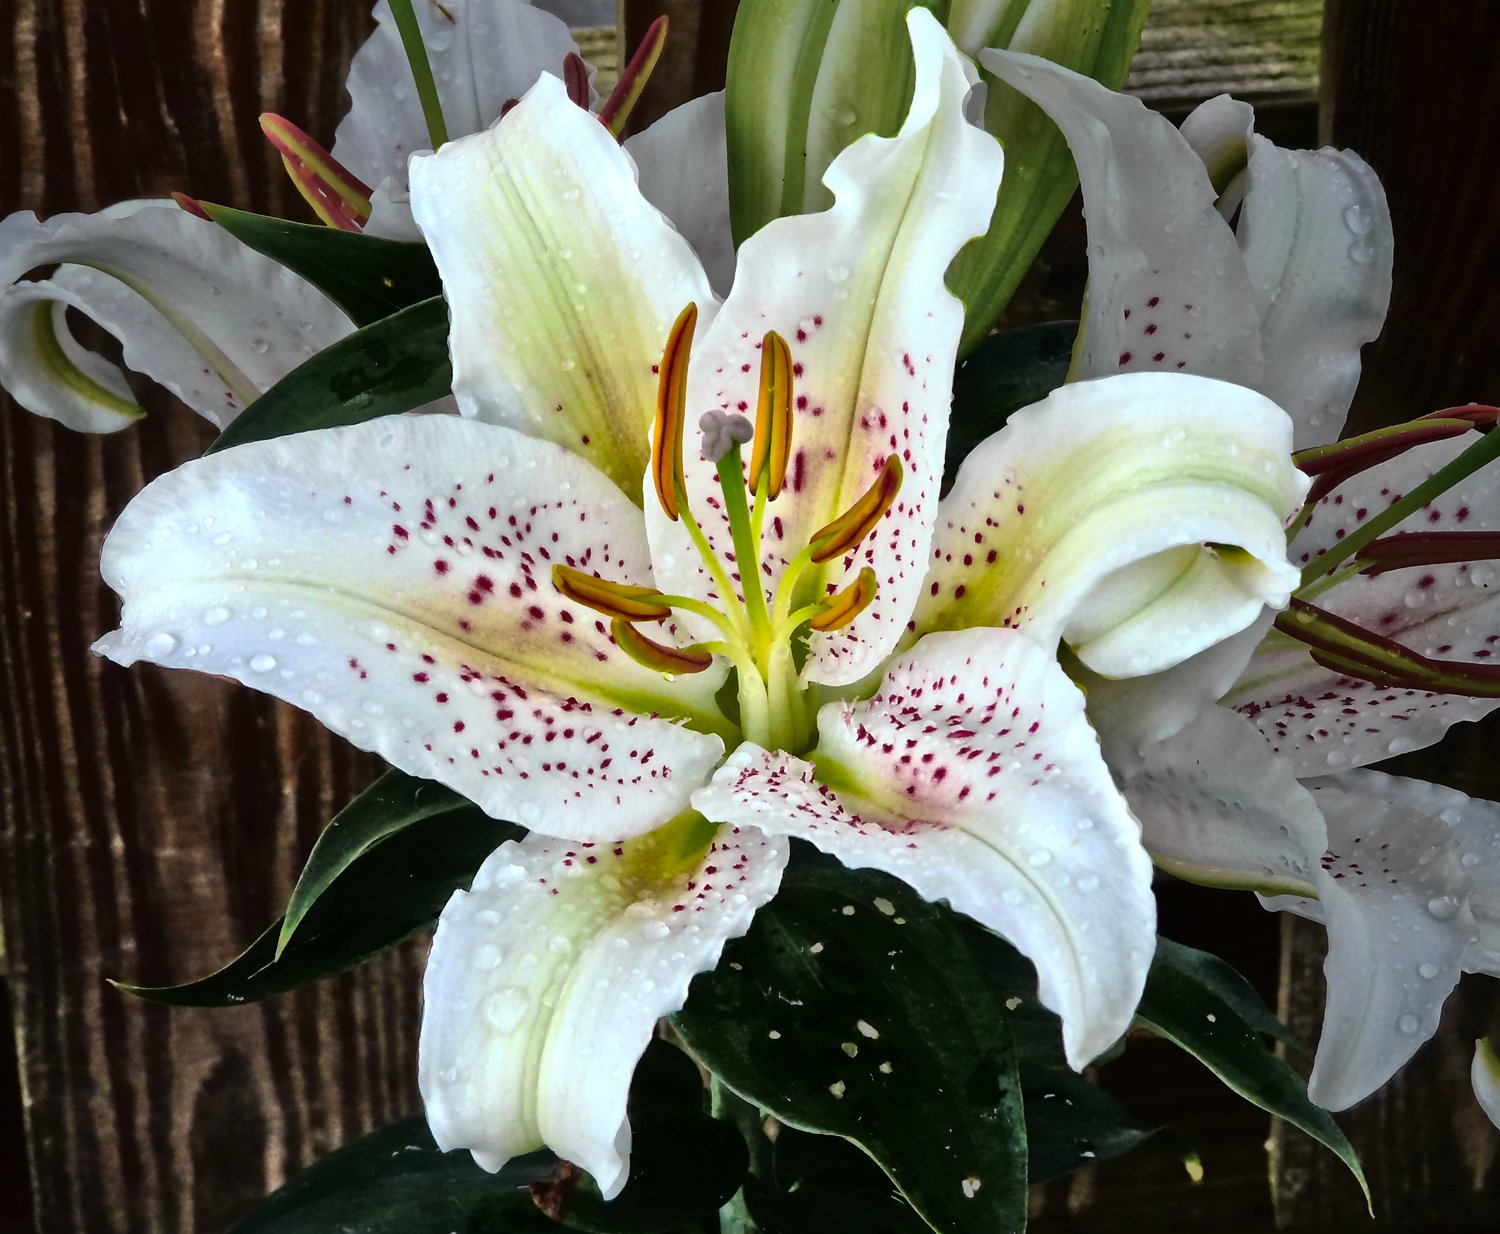 stargazer lilies - This one is pretty, but not as pretty as you. - - art  - photography - by Tony Karp